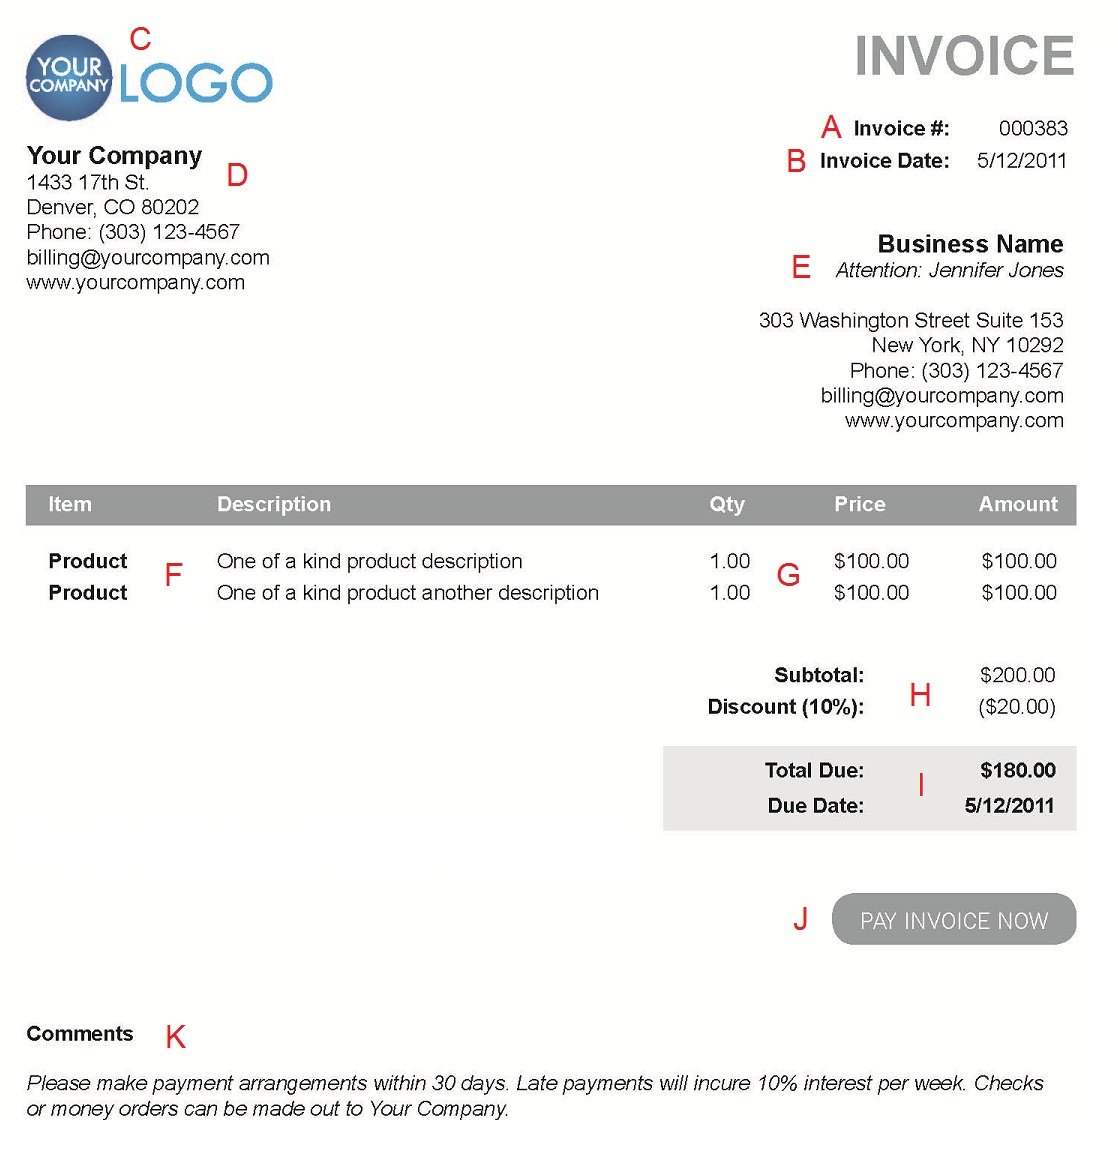 Pigbrotherus  Sweet The  Different Sections Of An Electronic Payment Invoice With Lovely A  With Delightful Ms Access Invoice Also Top Invoicing Software In Addition Example Of A Tax Invoice And Sale Invoice Definition As Well As Invoicing And Accounting Software Additionally Labour Invoice Template From Paysimplecom With Pigbrotherus  Lovely The  Different Sections Of An Electronic Payment Invoice With Delightful A  And Sweet Ms Access Invoice Also Top Invoicing Software In Addition Example Of A Tax Invoice From Paysimplecom